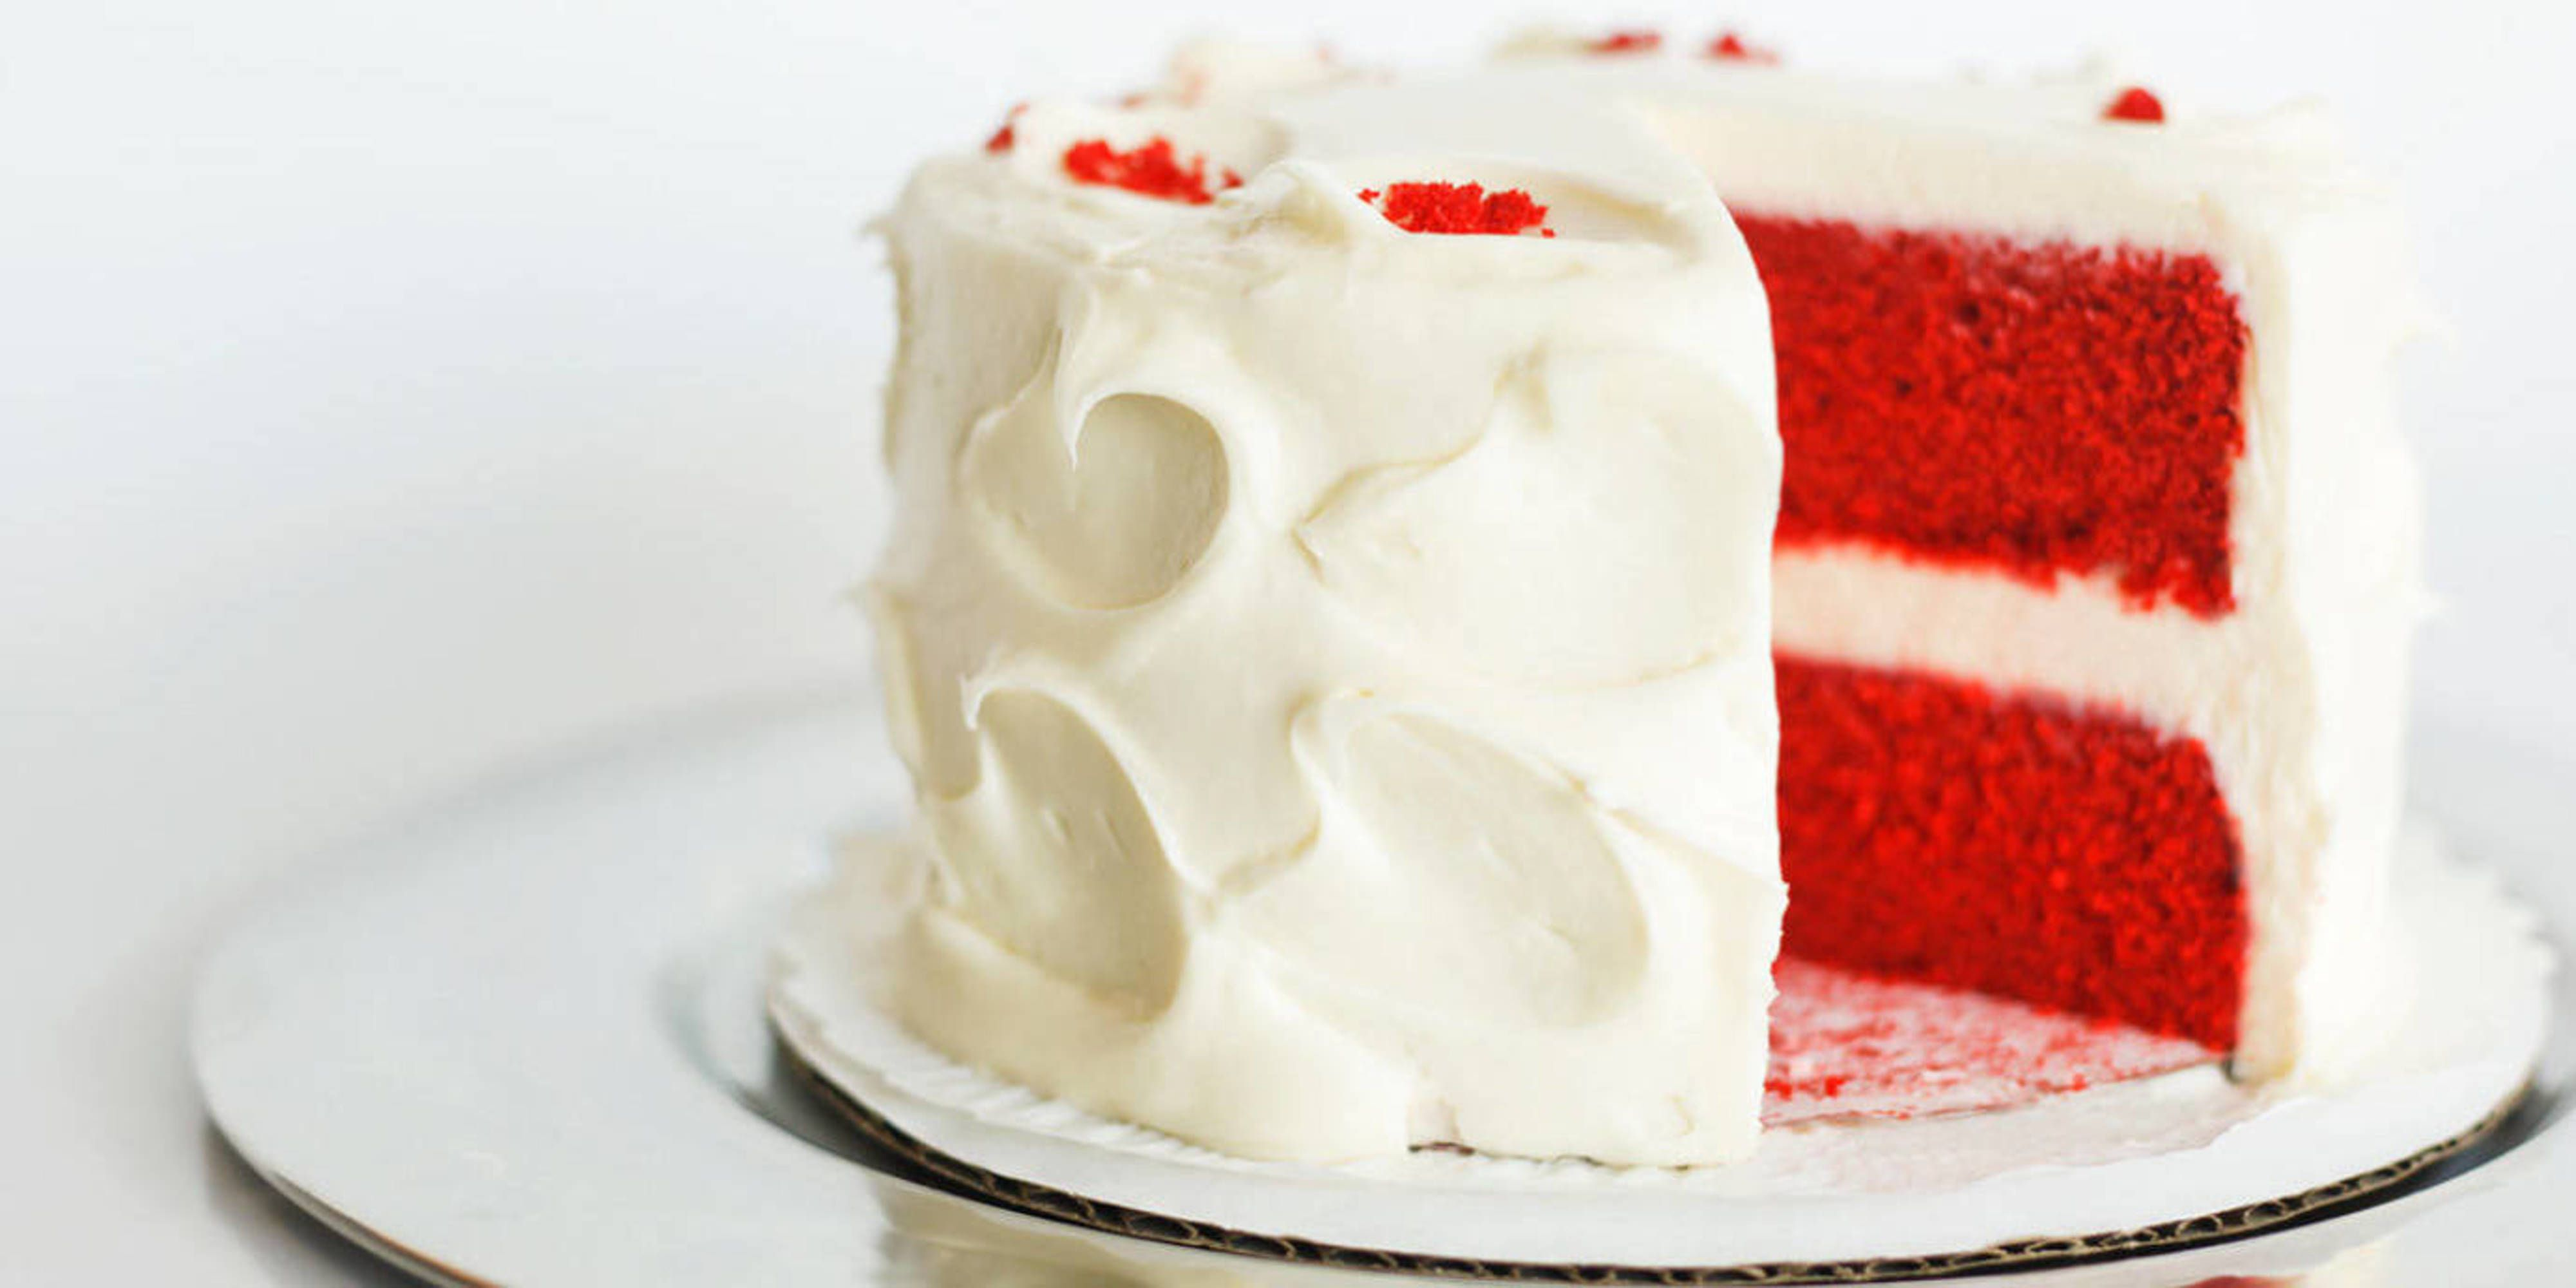 8 Best Cakes in NYC Our Favorite Cakes to Get in Manhattan